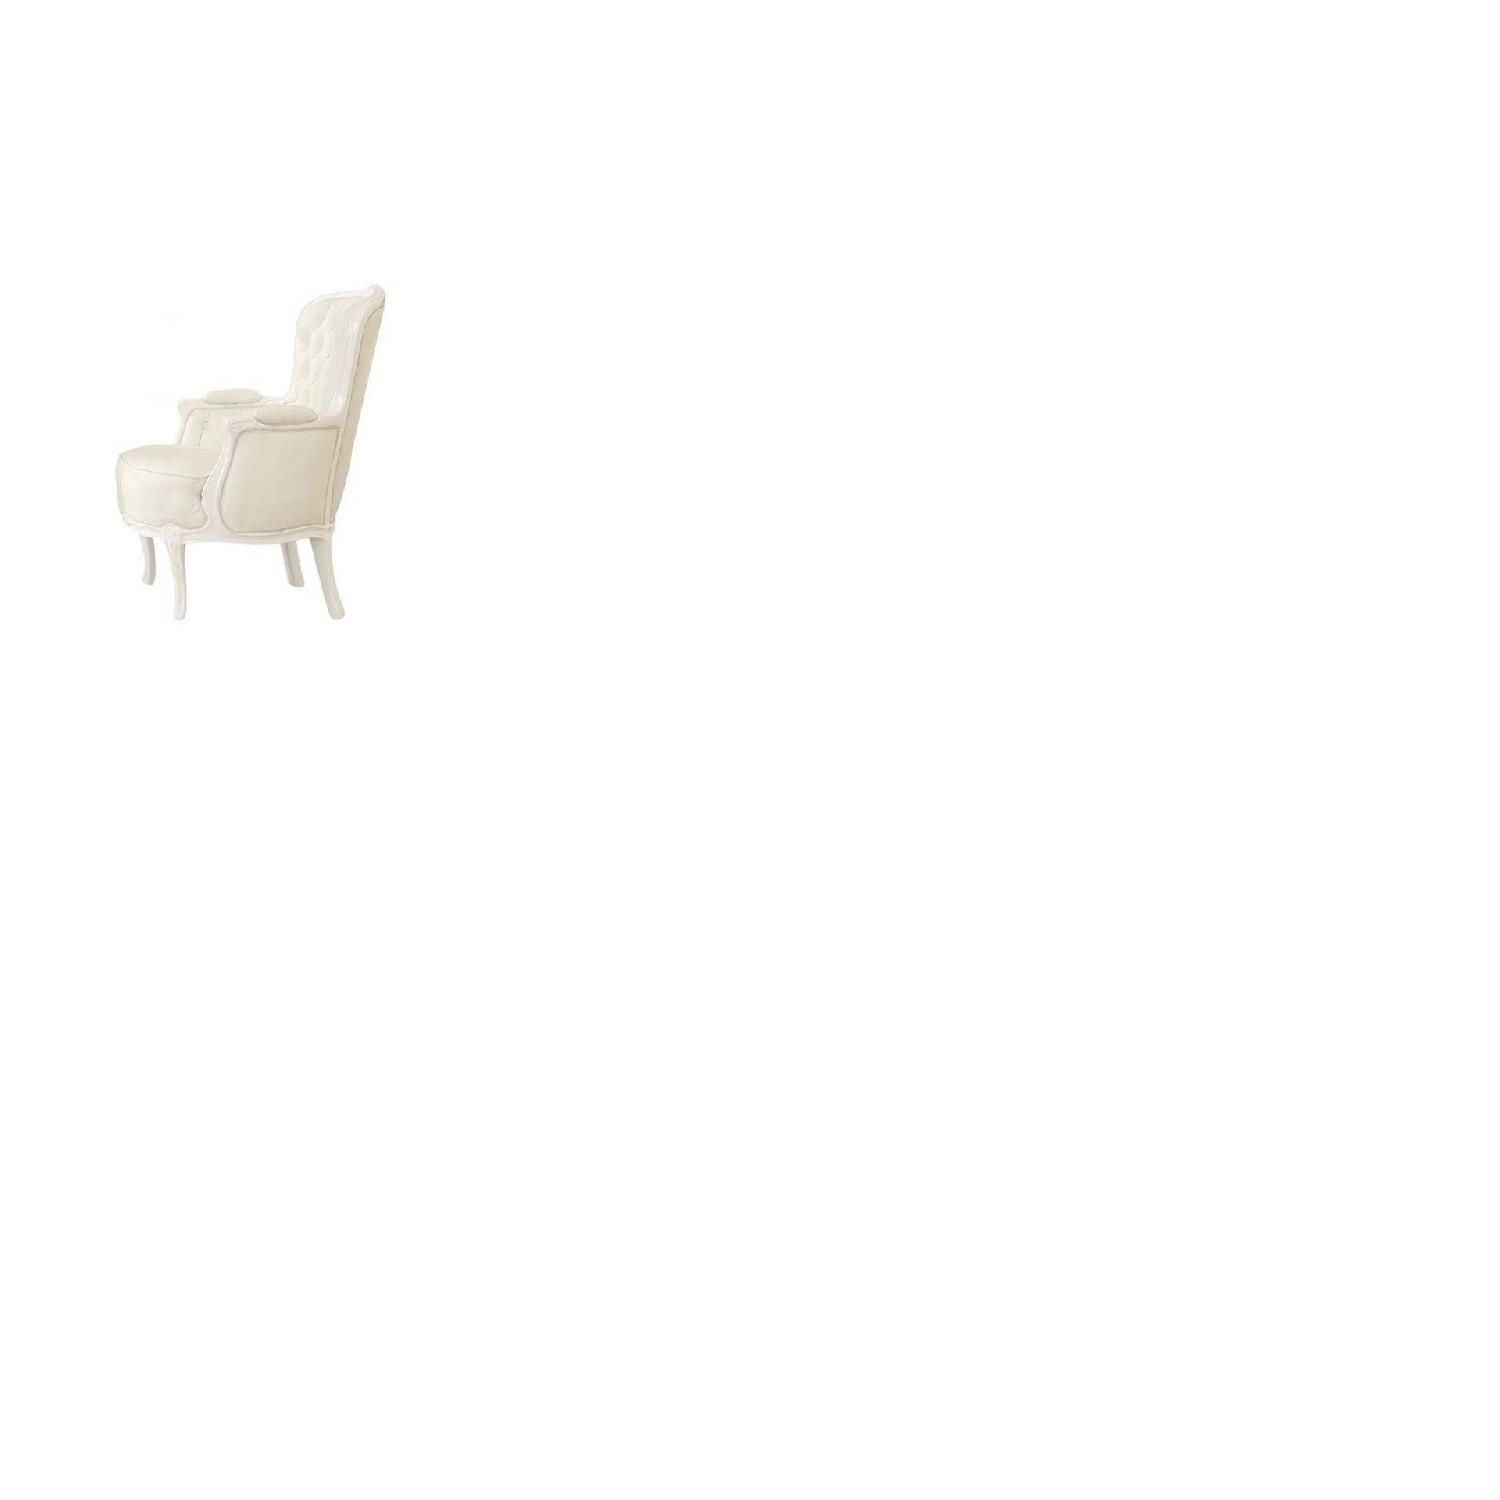 White Accent Chair w/ Button Tufted Back & Padded Seat & Armrests - image-2